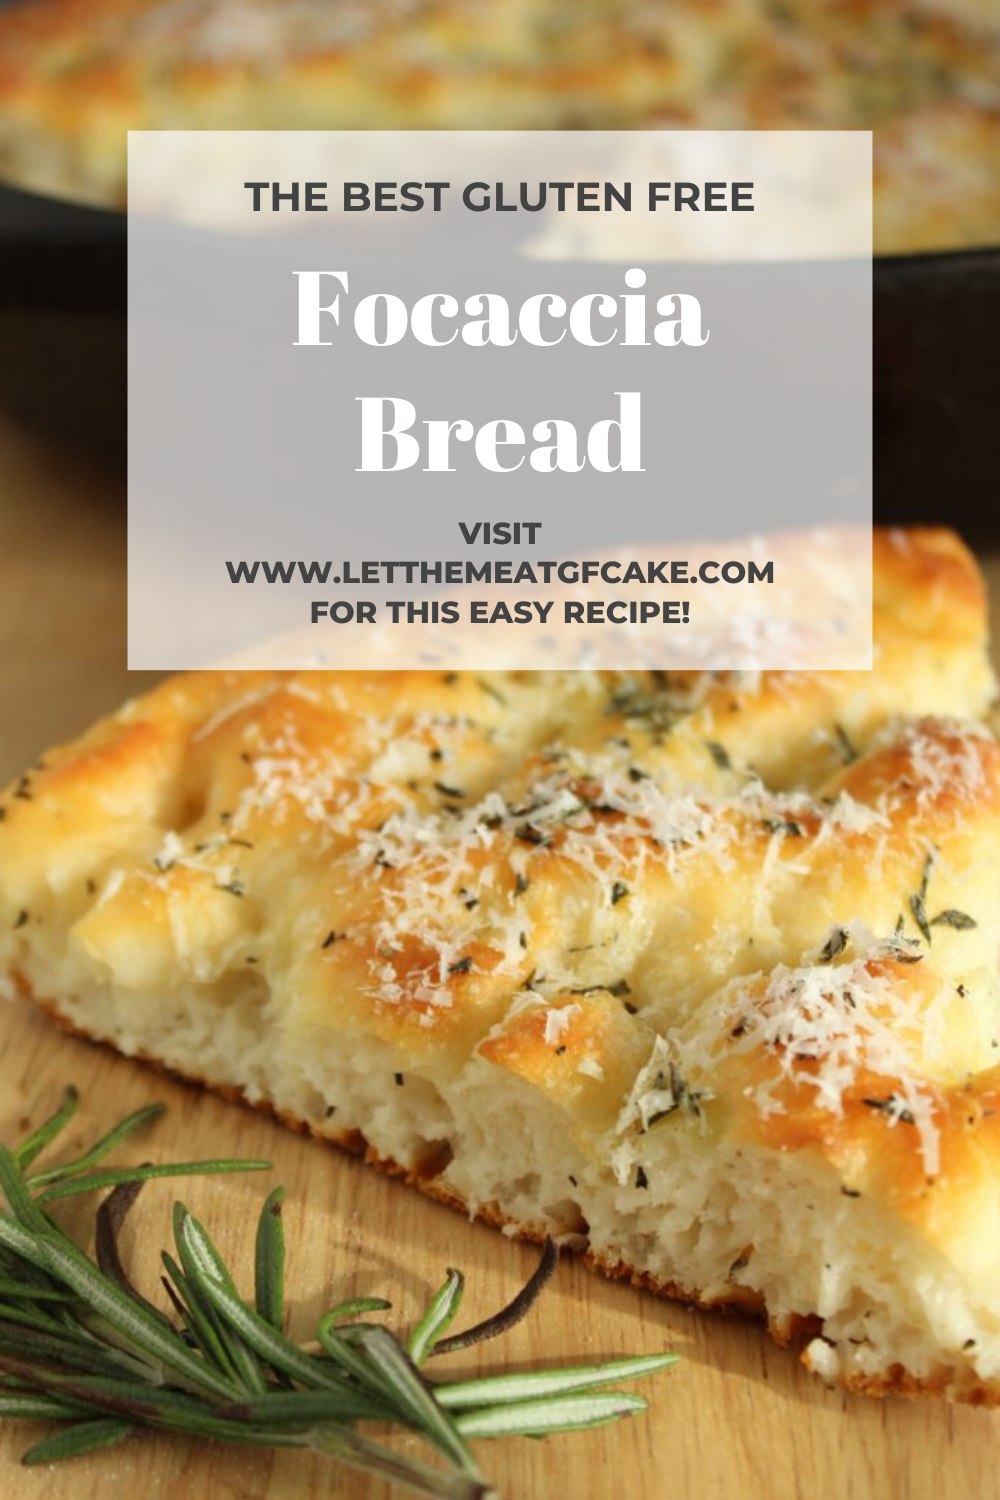 Gluten Free Focaccia Bread Let Them Eat Gluten Free Cake Recipe In 2020 Gluten Free Focaccia Focaccia Bread Gluten Free Recipes Easy